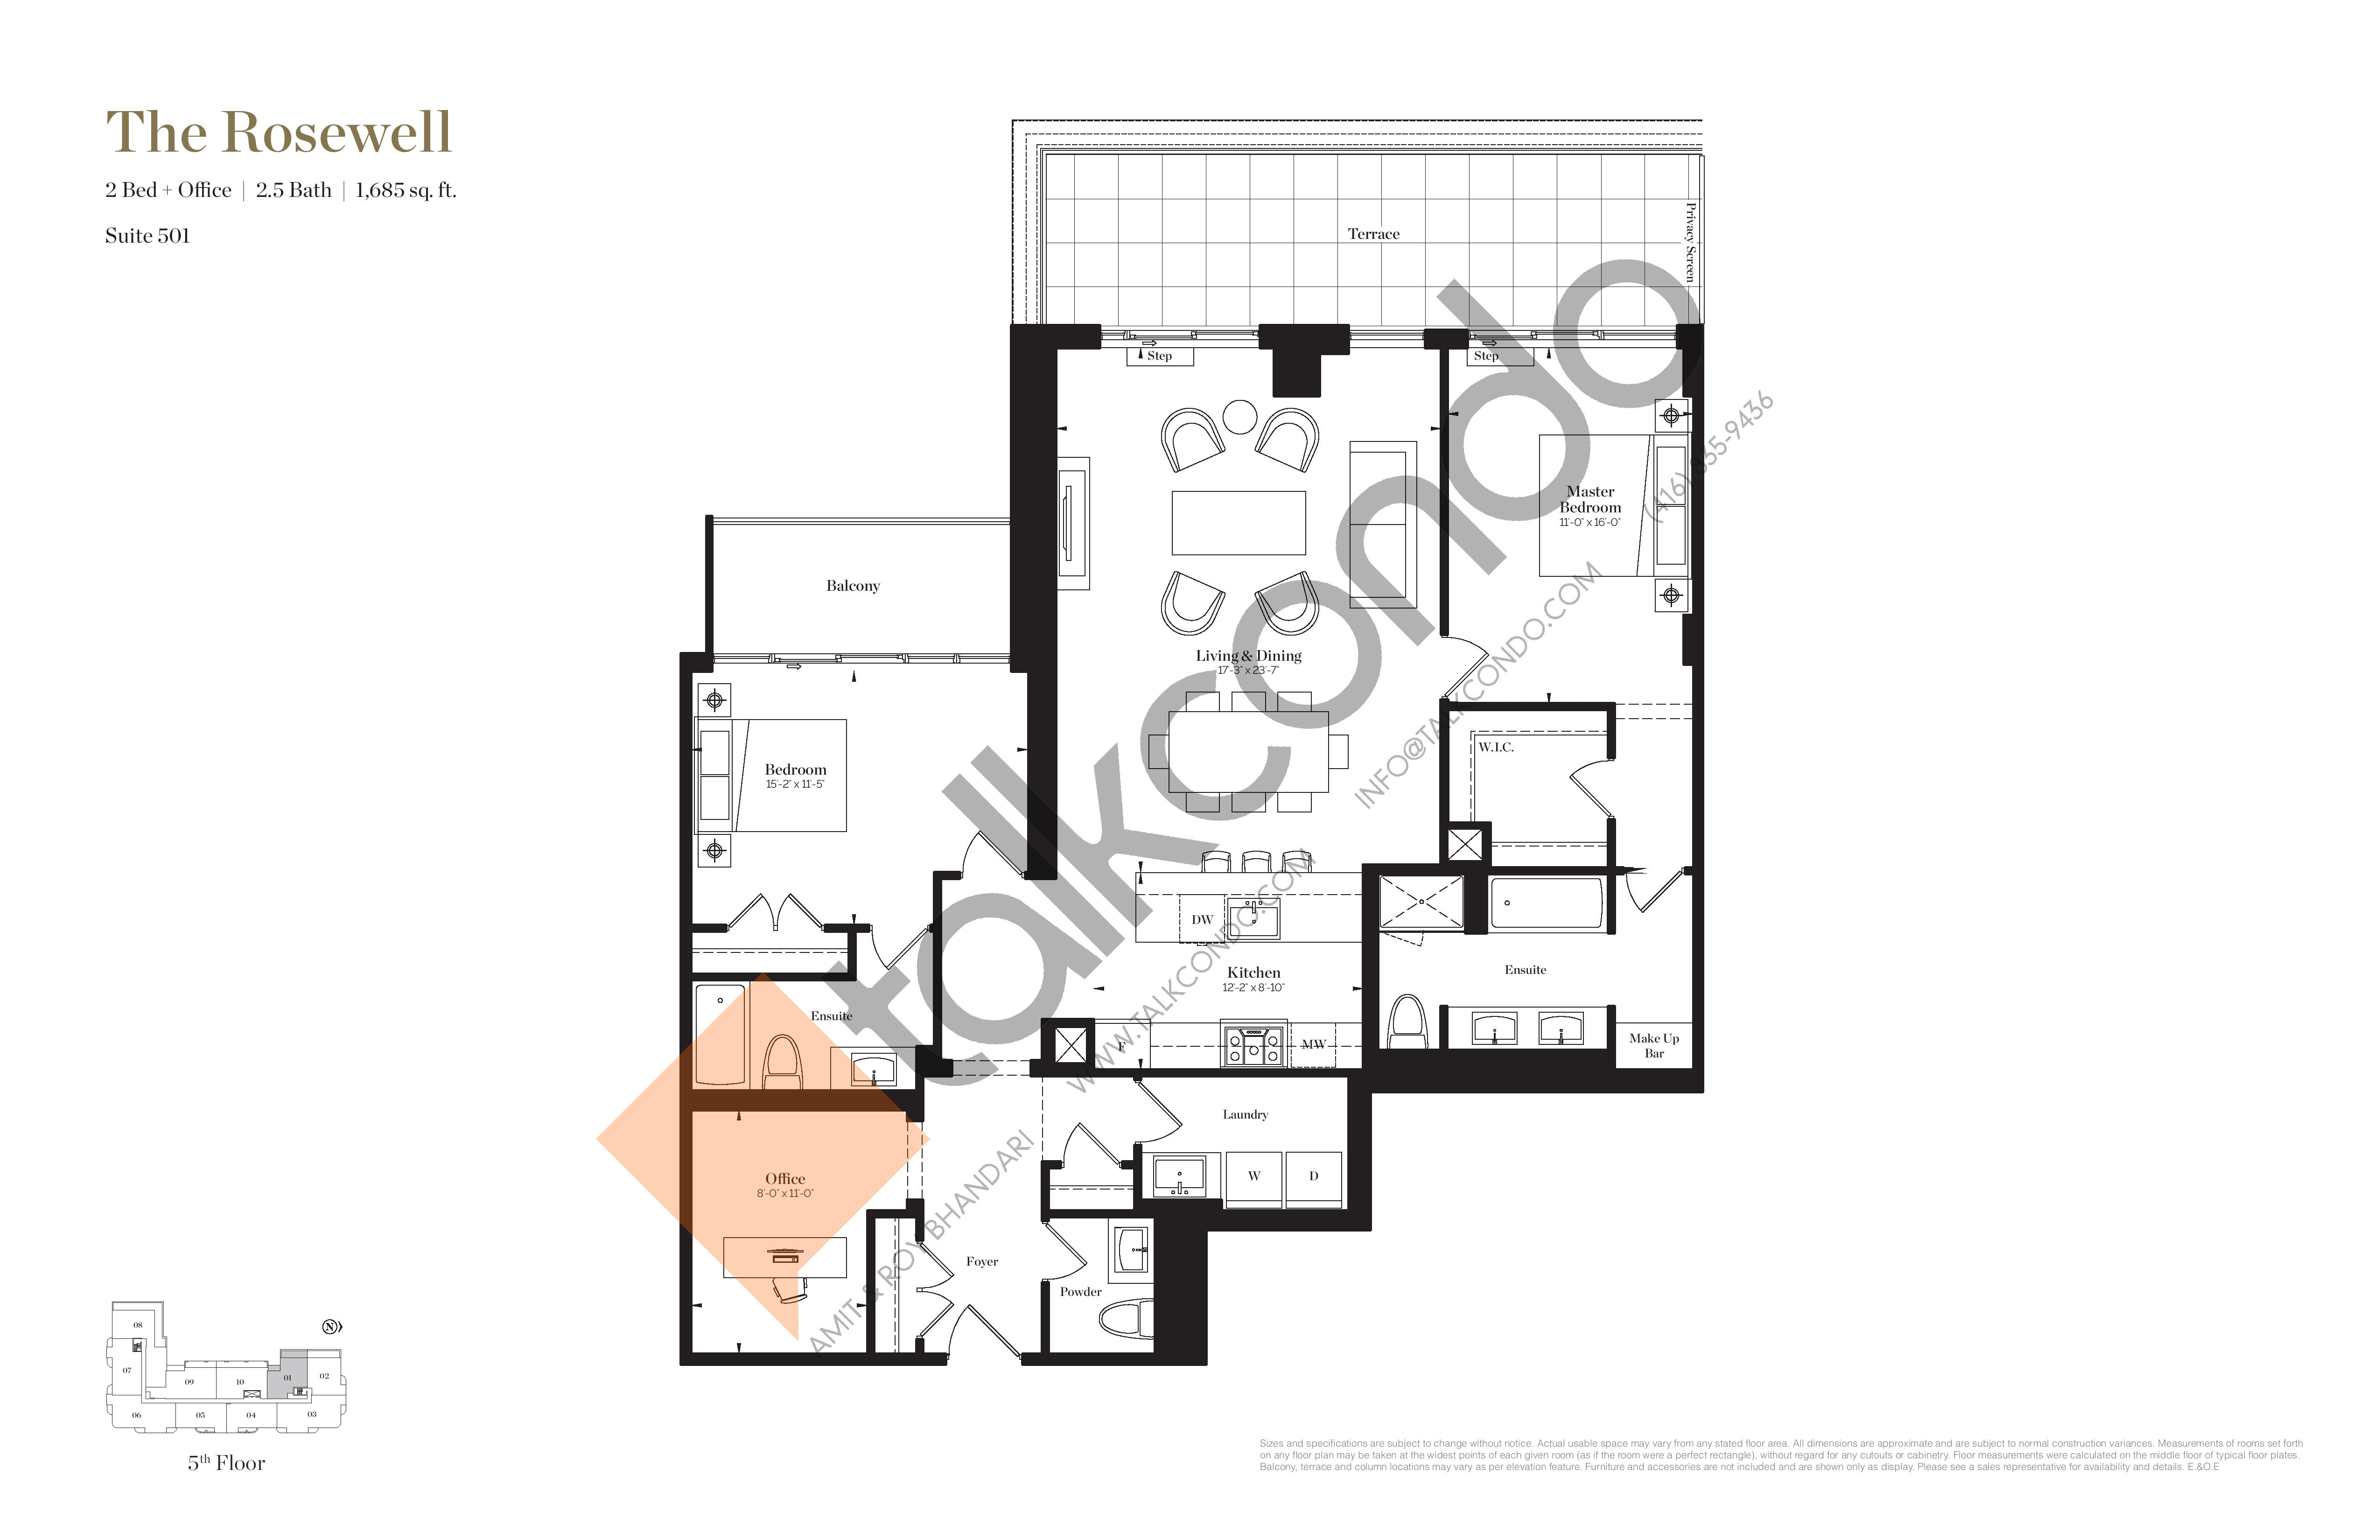 The Rosewell Floor Plan at Empire Maven Condos - 1685 sq.ft